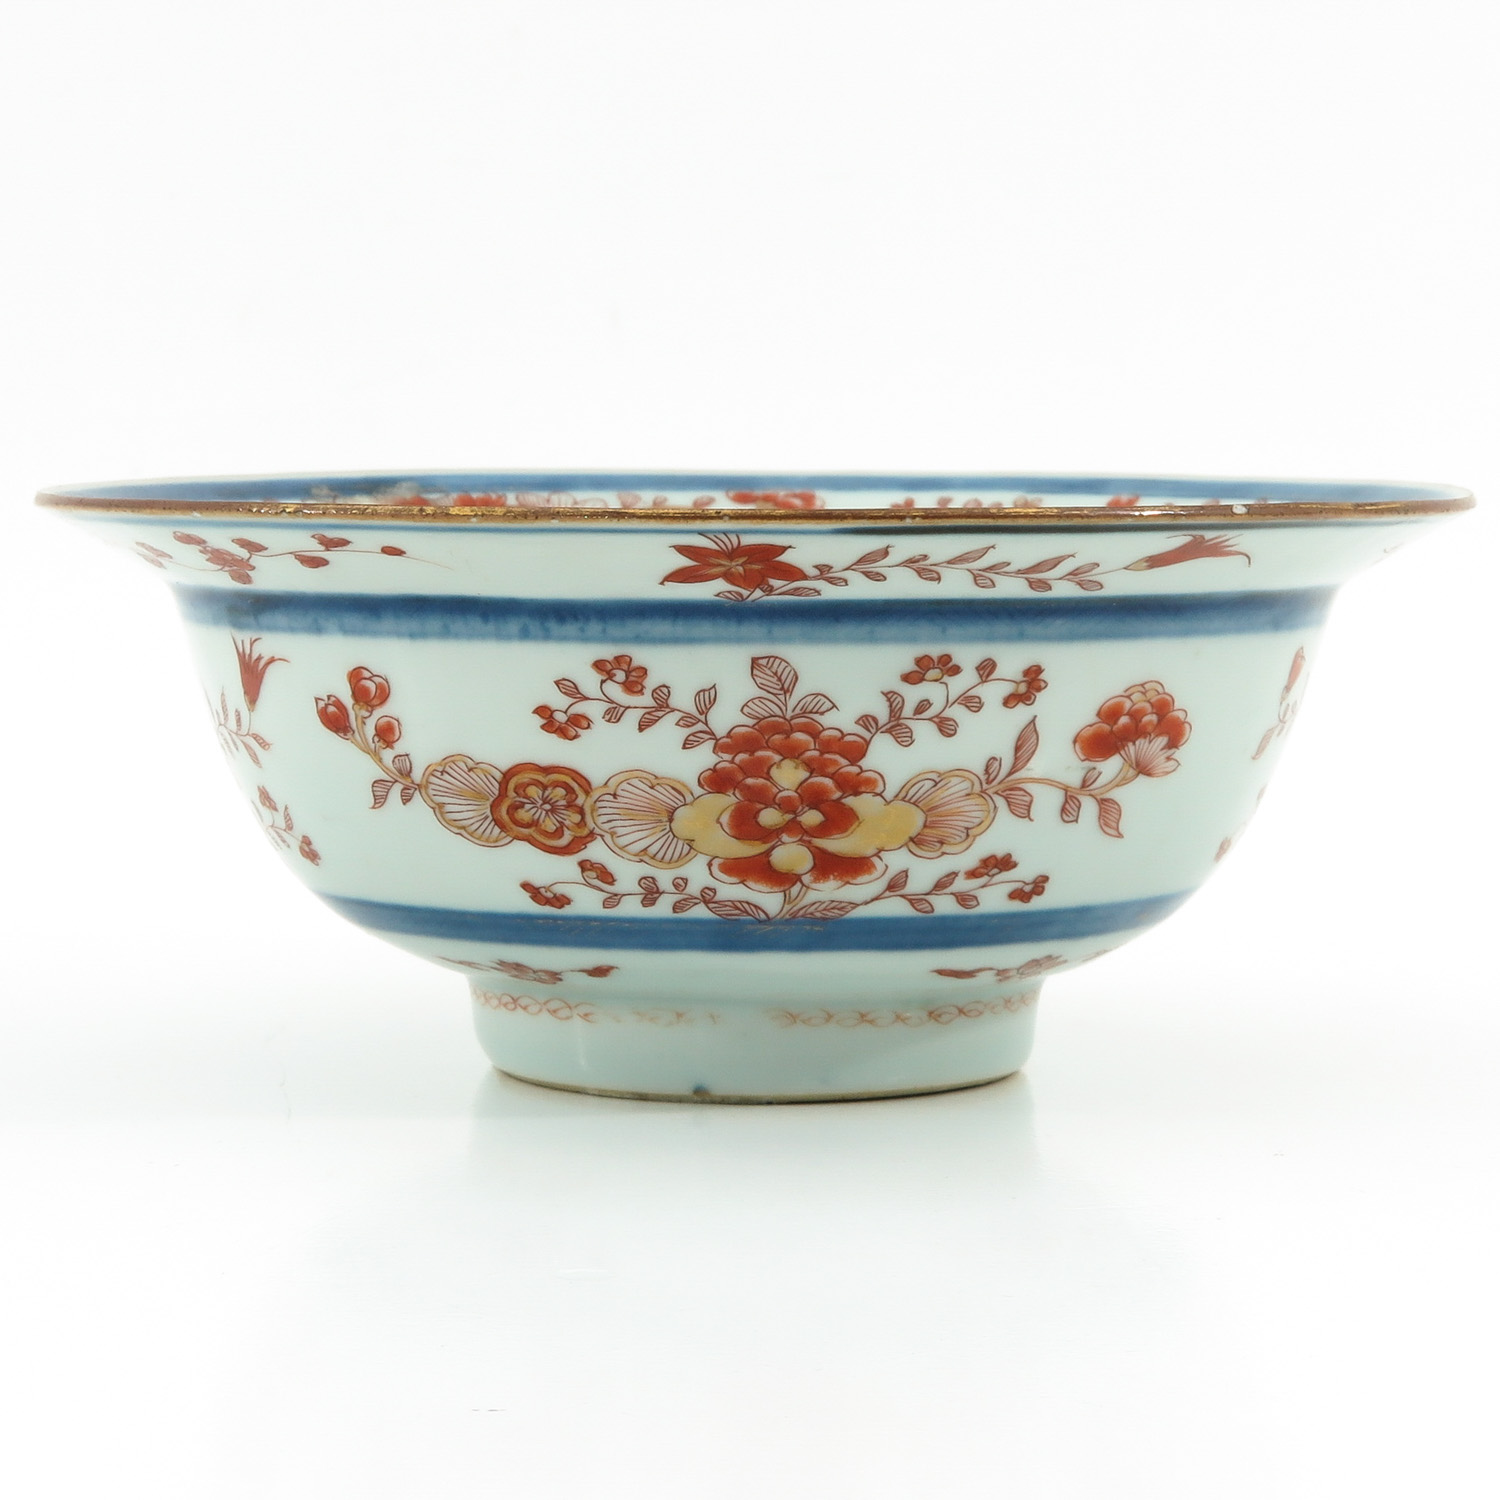 A Blue and Iron Red Bowl